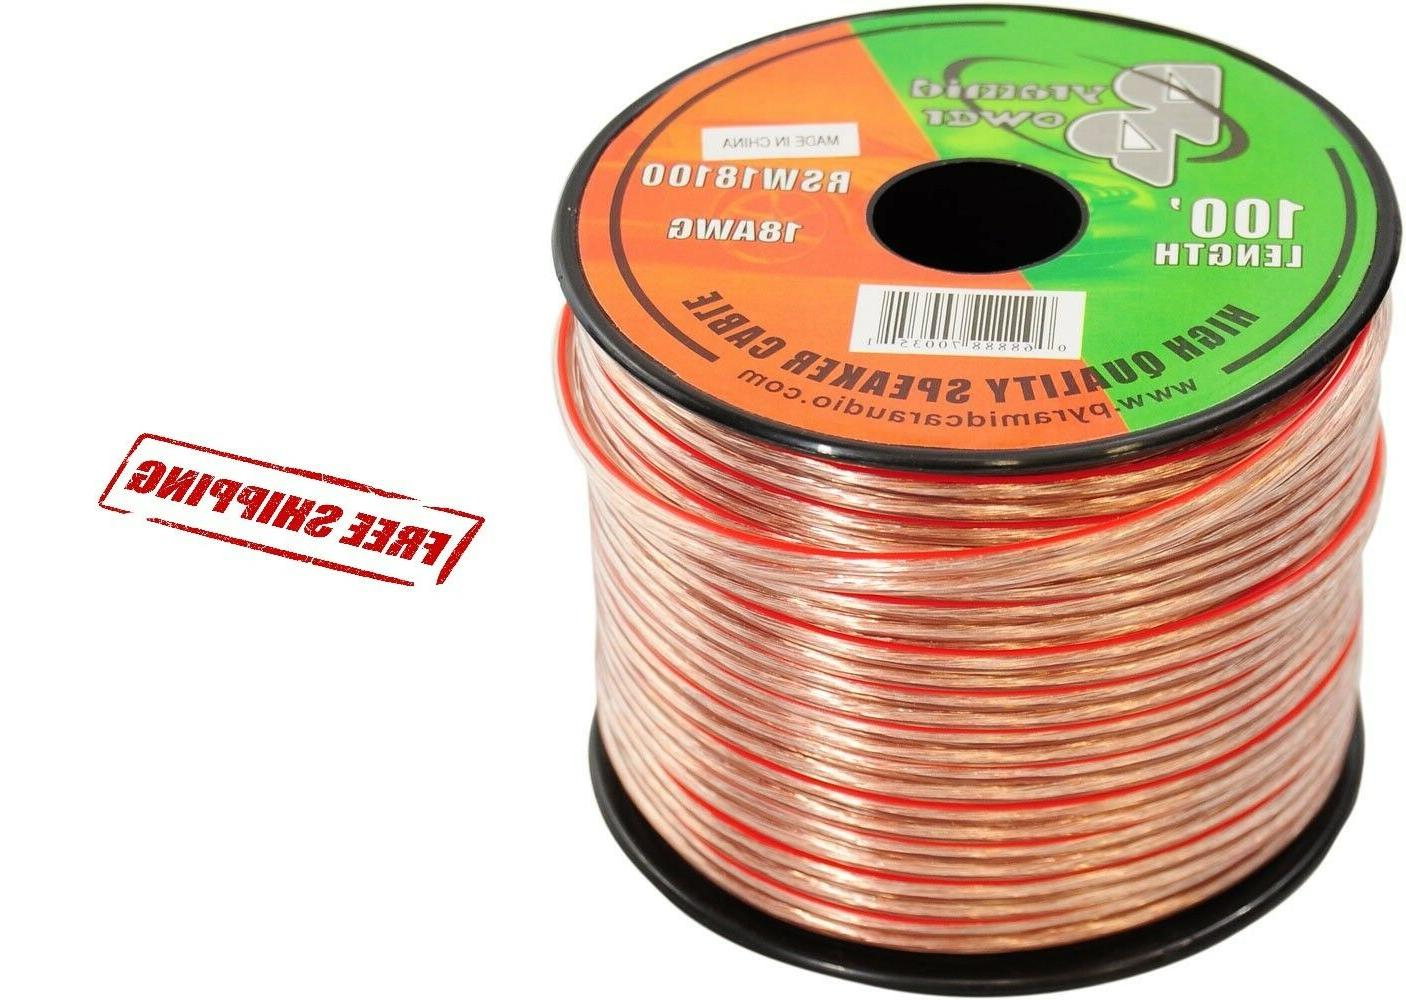 100ft 18 GA Gauge Speaker Wire Audio Car Cable Stereo Amplif